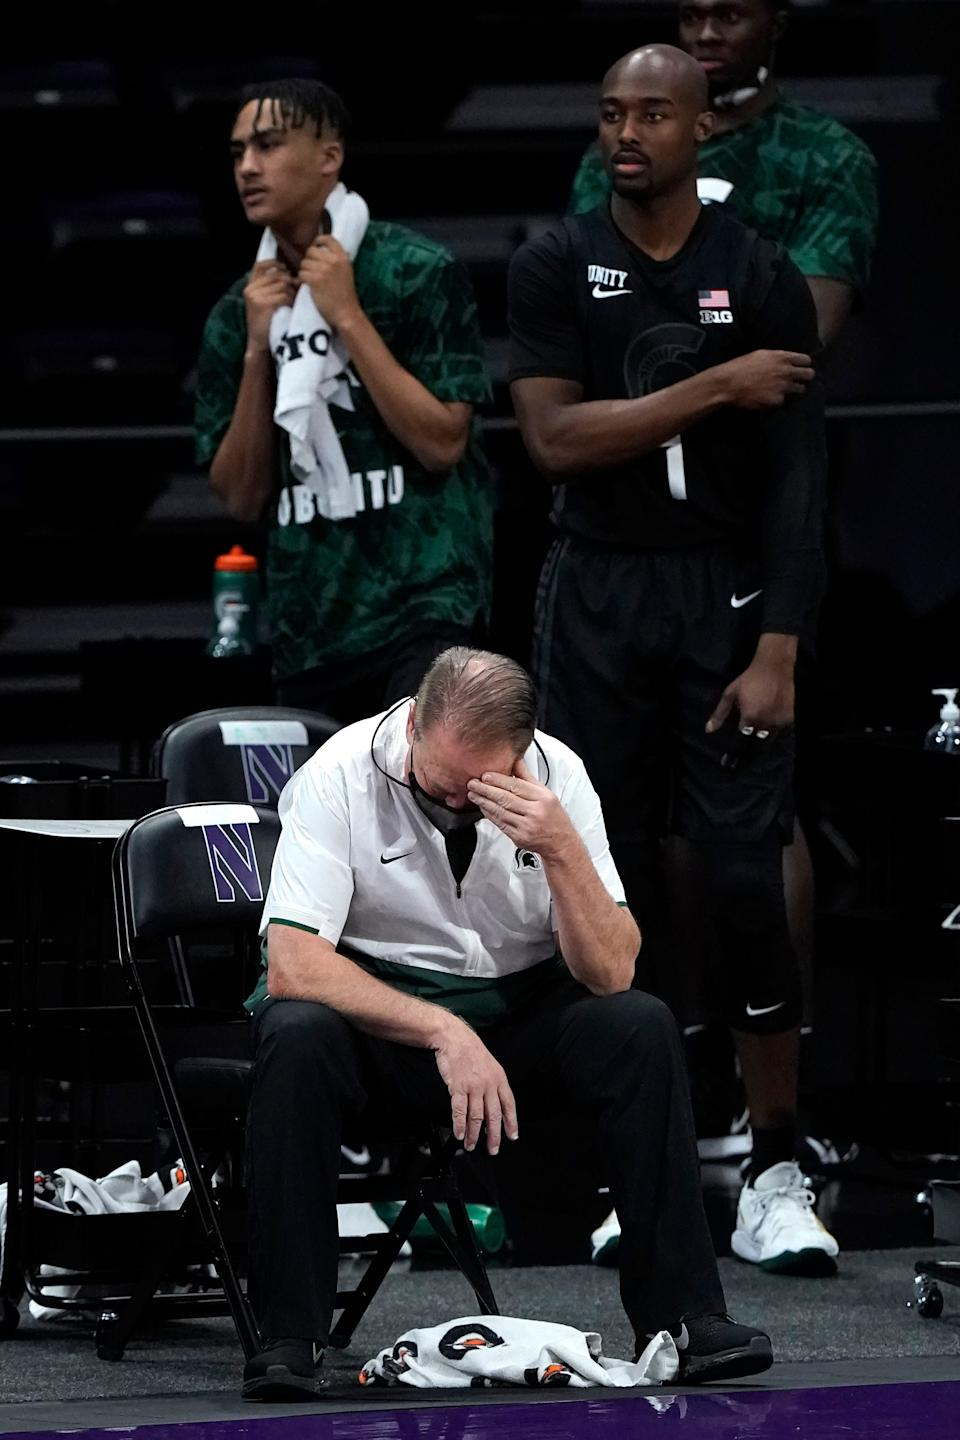 Michigan State head coach Tom Izzo, bottom, reacts during the second half of an NCAA college basketball game against Northwestern in Evanston, Ill., Sunday, Dec. 20, 2020. Northwestern won 79-65.